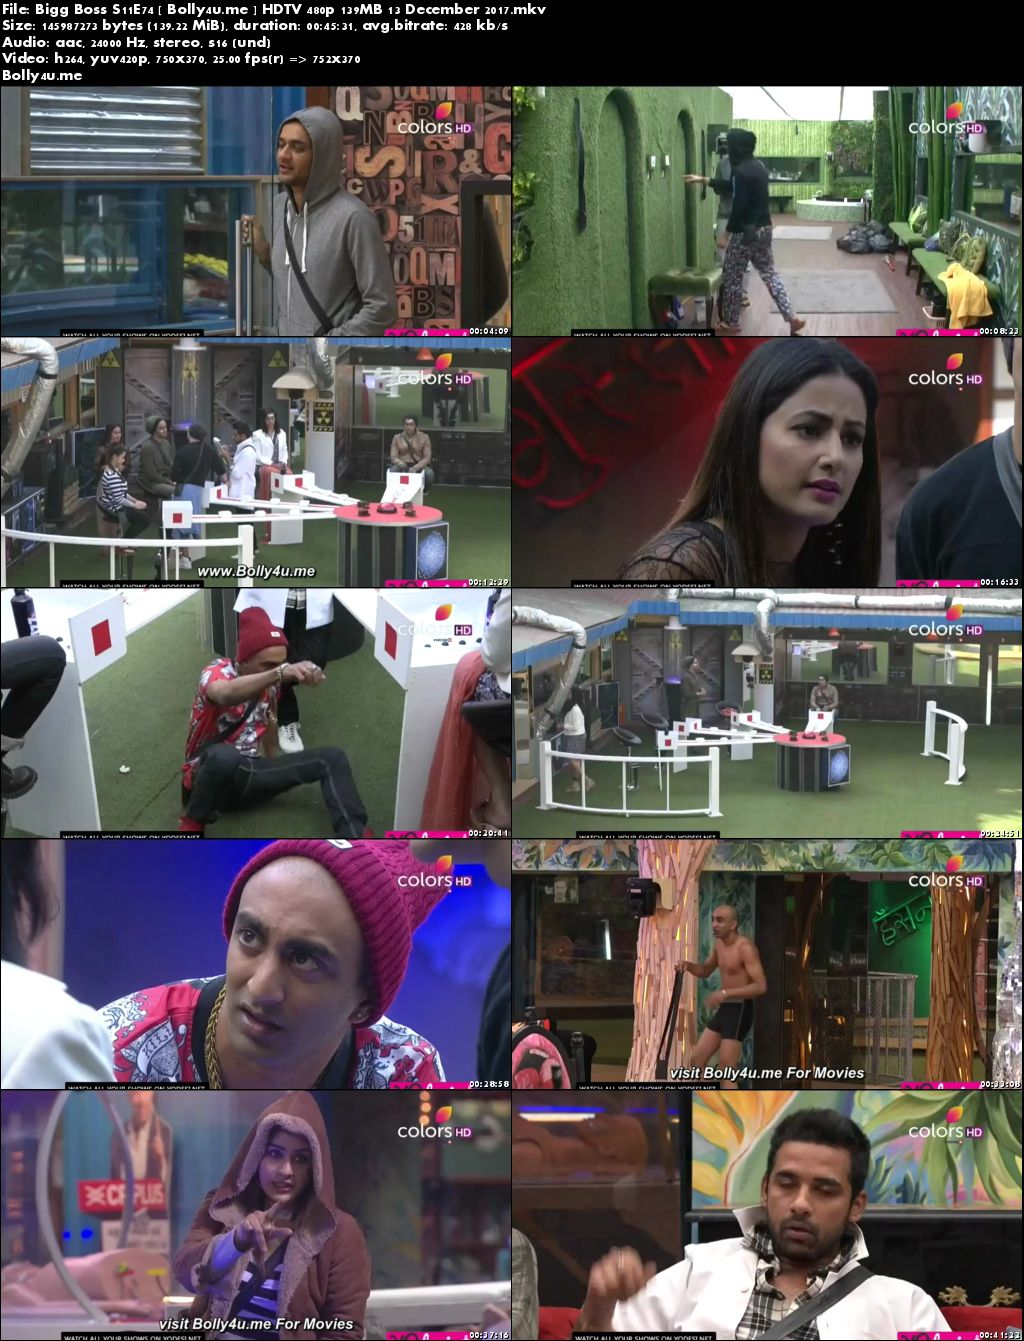 Bigg Boss S11E74 HDTV 480p 140MB 13 December 2017 Download